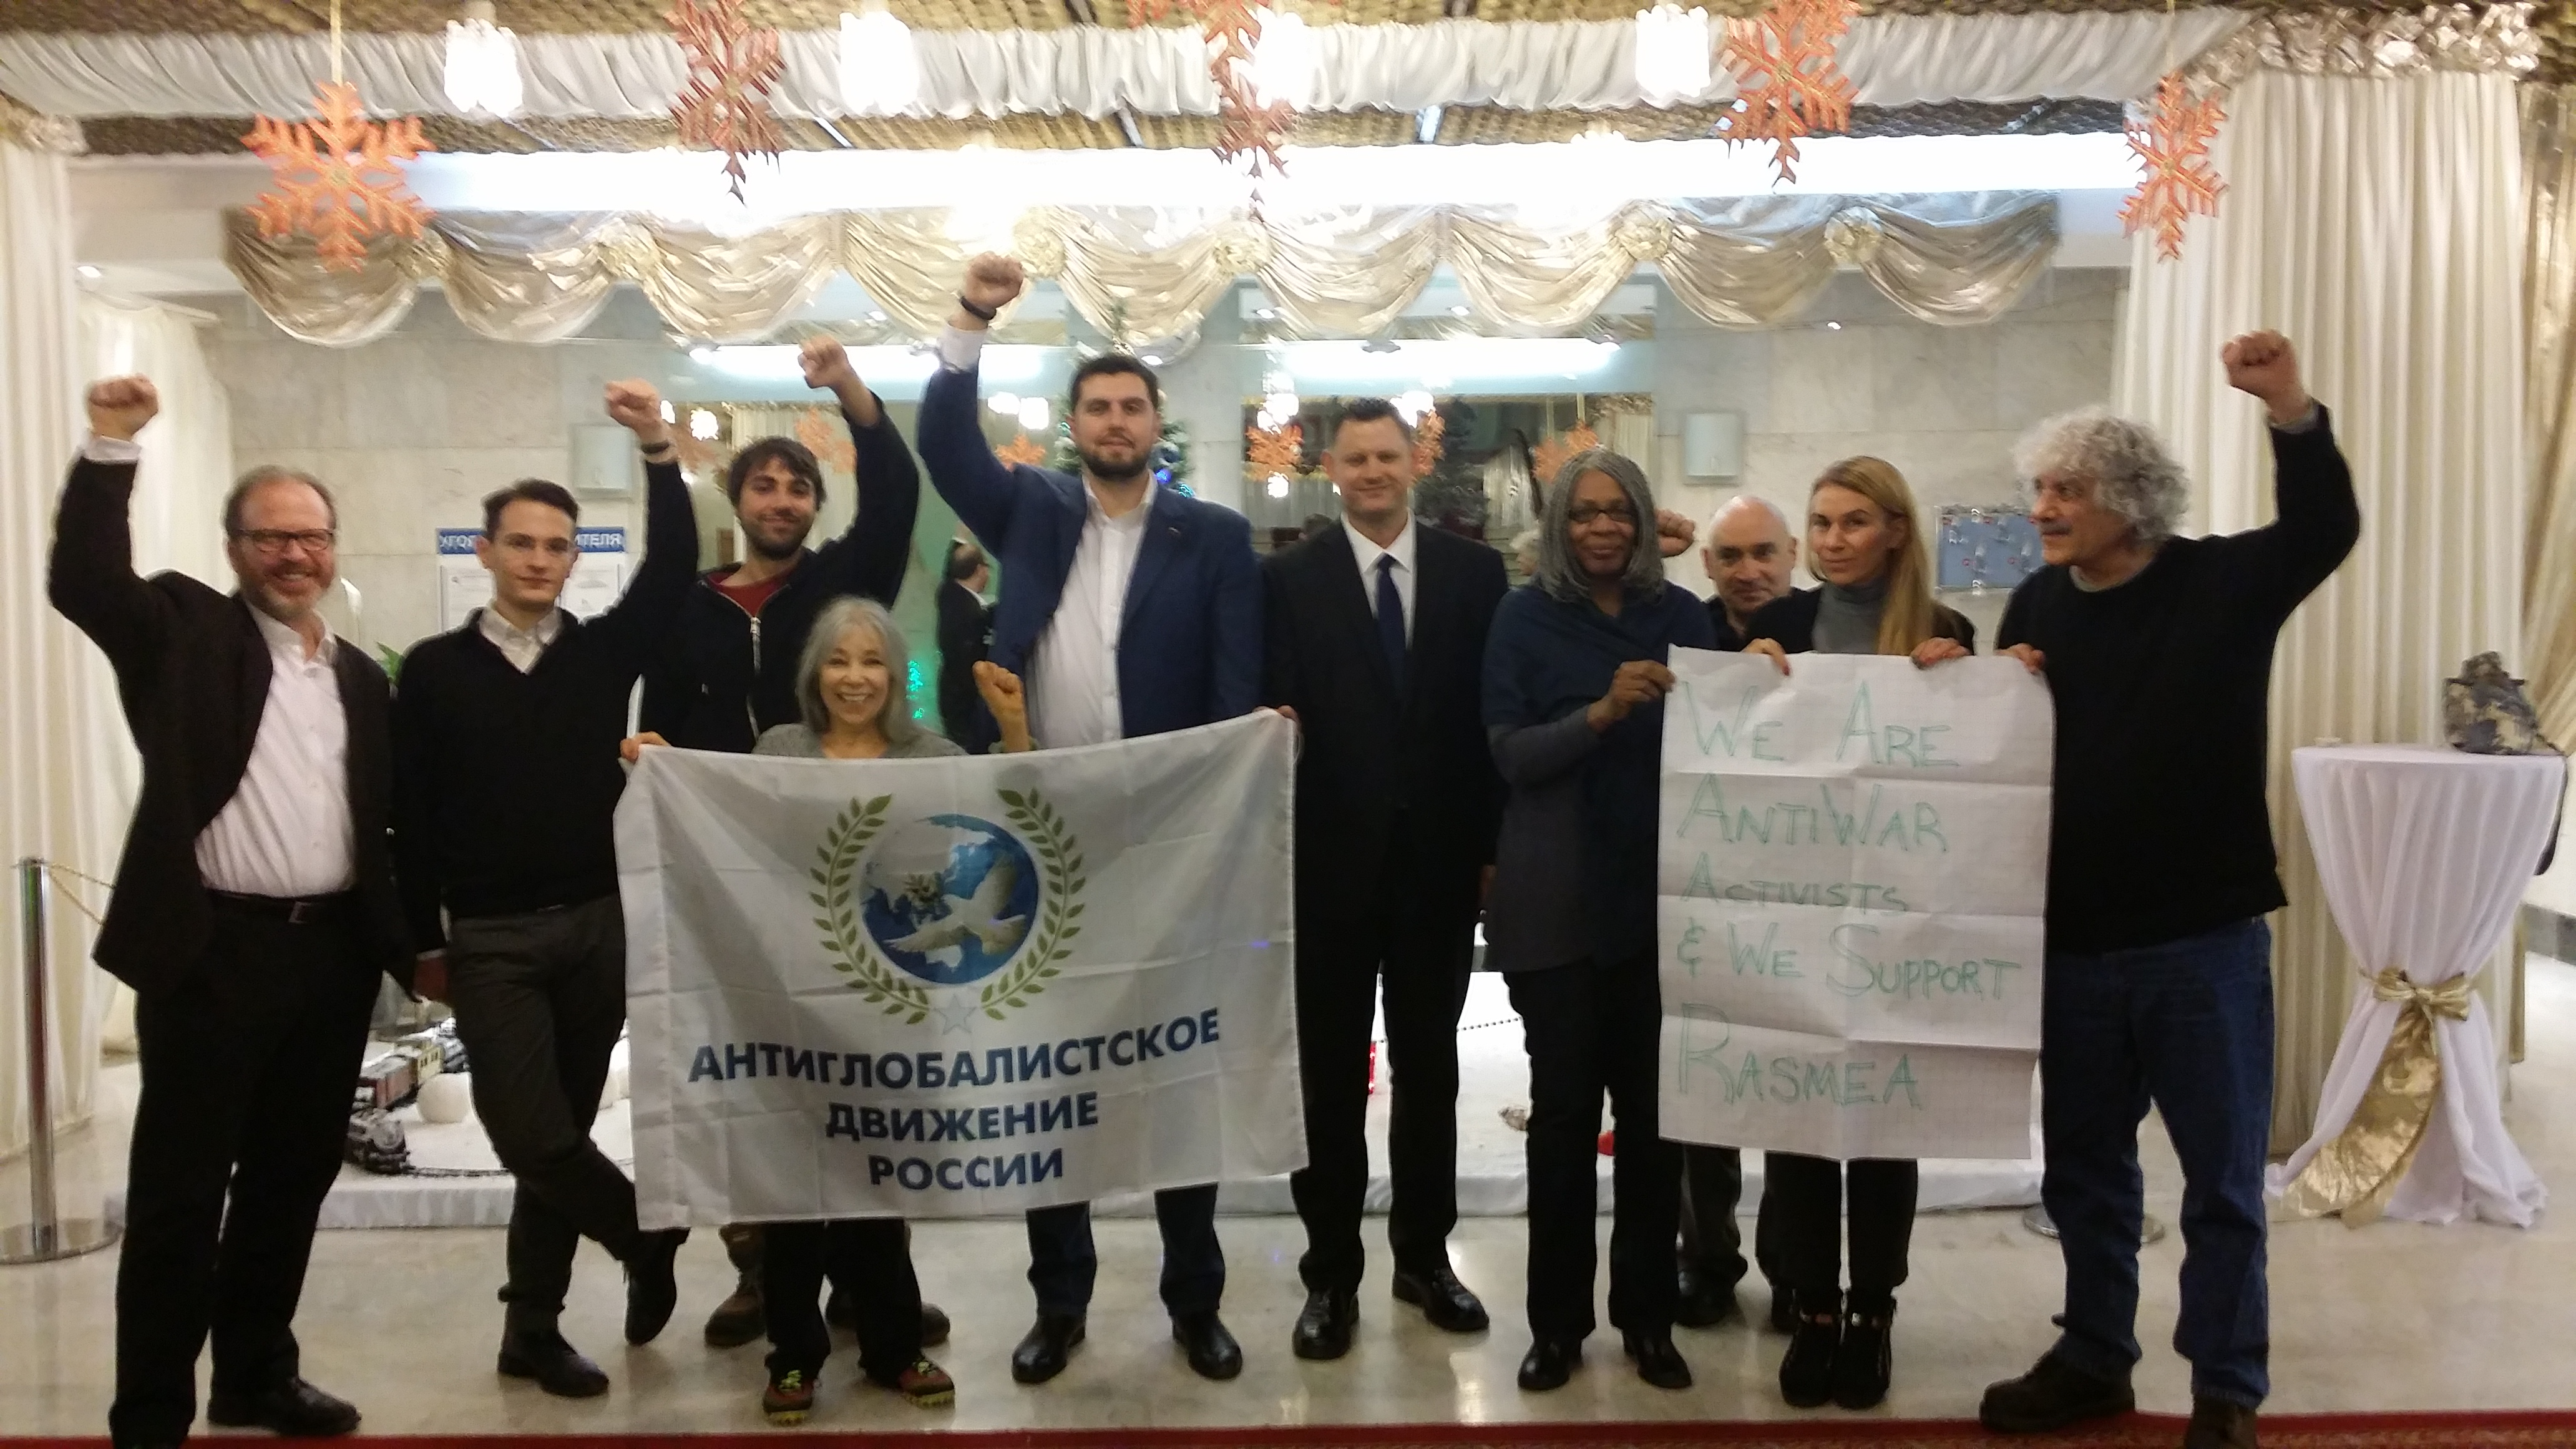 UNAC published a report on their trip to Russia